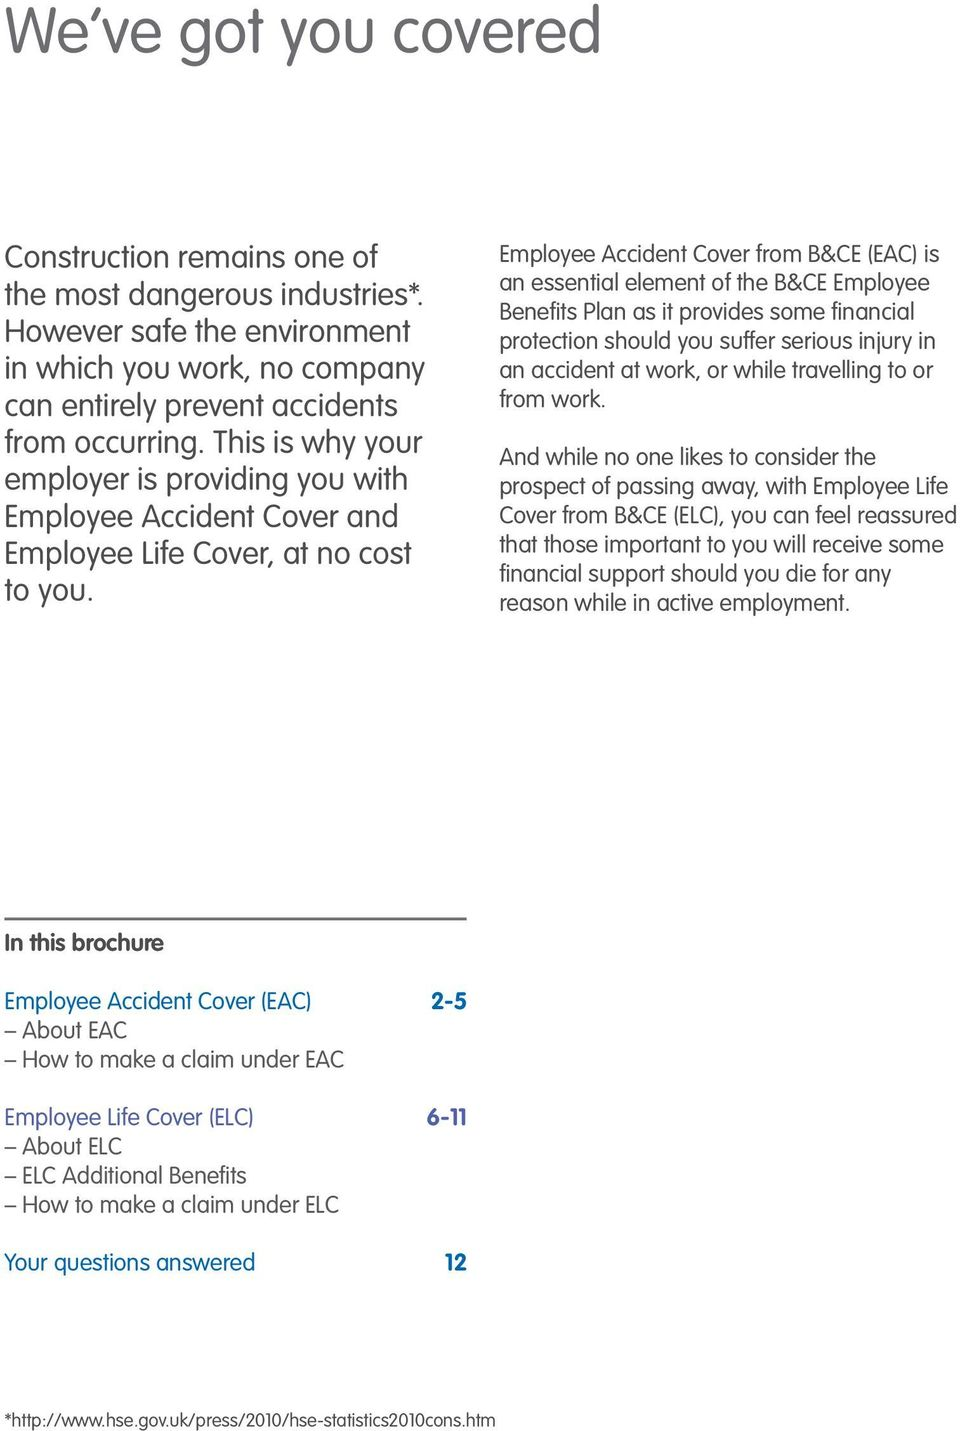 Employee Accident Cover from B&CE (EAC) is an essential element of the B&CE Employee Benefits Plan as it provides some financial protection should you suffer serious injury in an accident at work, or